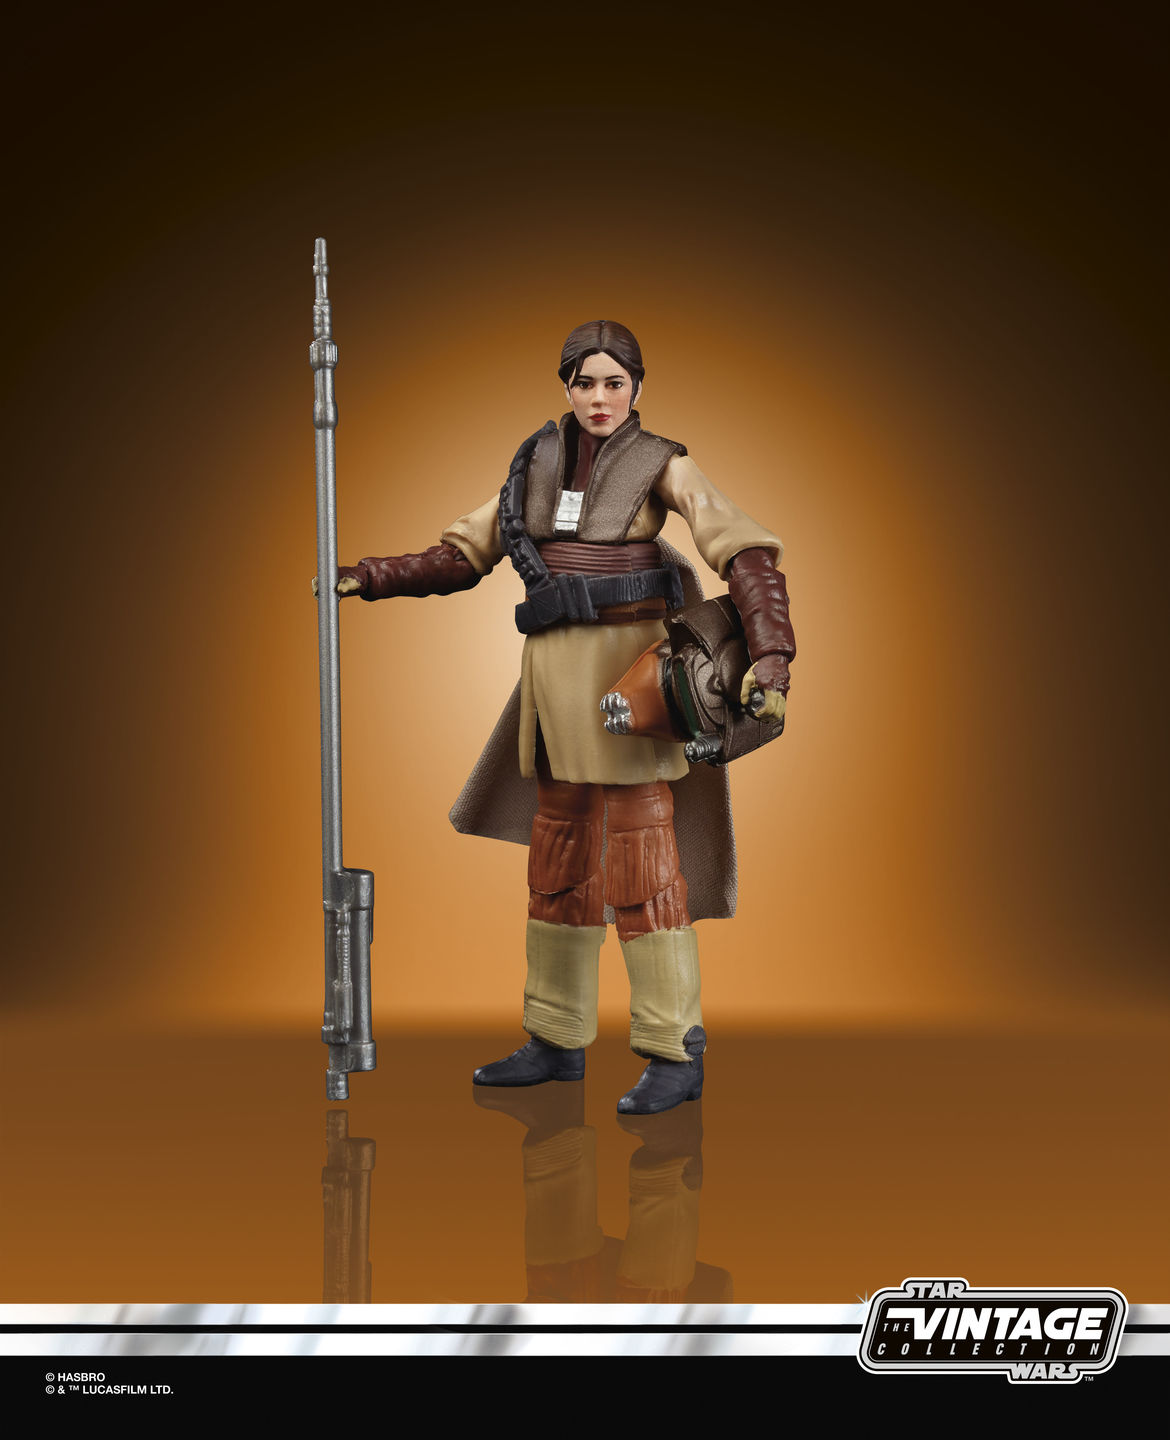 STAR WARS THE VINTAGE COLLECTION FIGURE - Leia Boushh (PhotoReal 2)